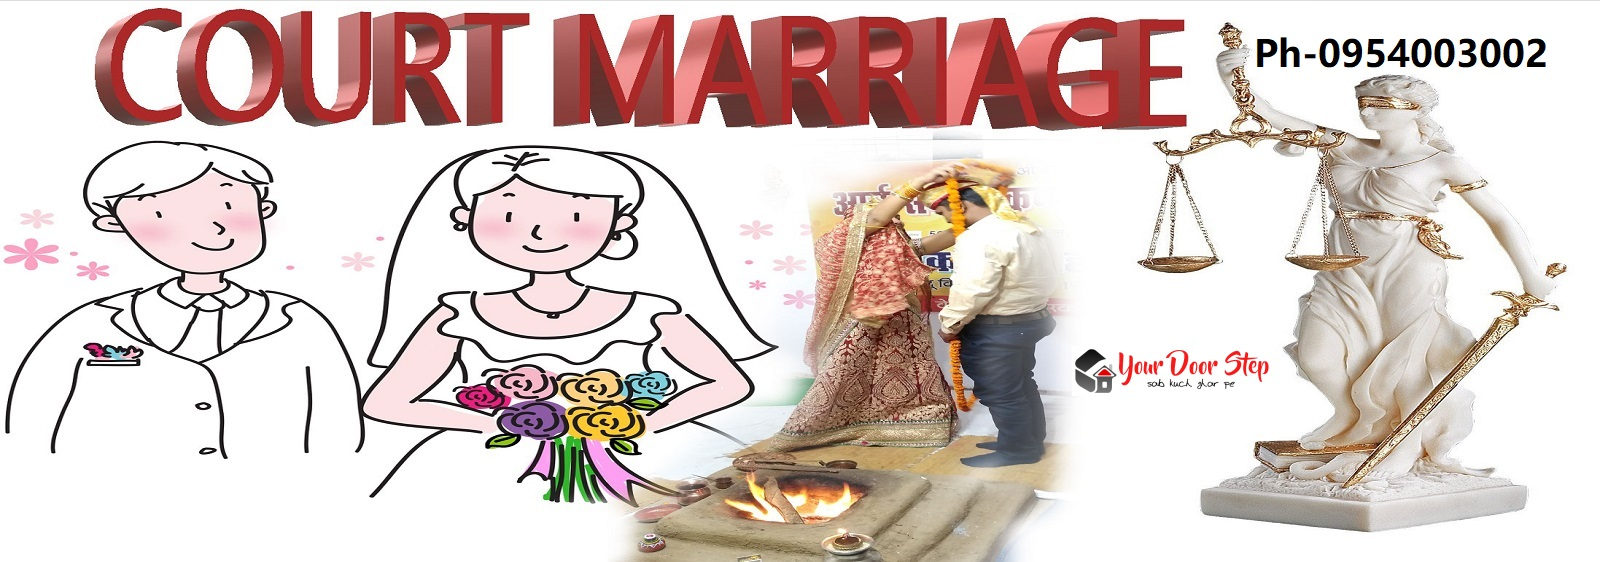 court marriage in pune